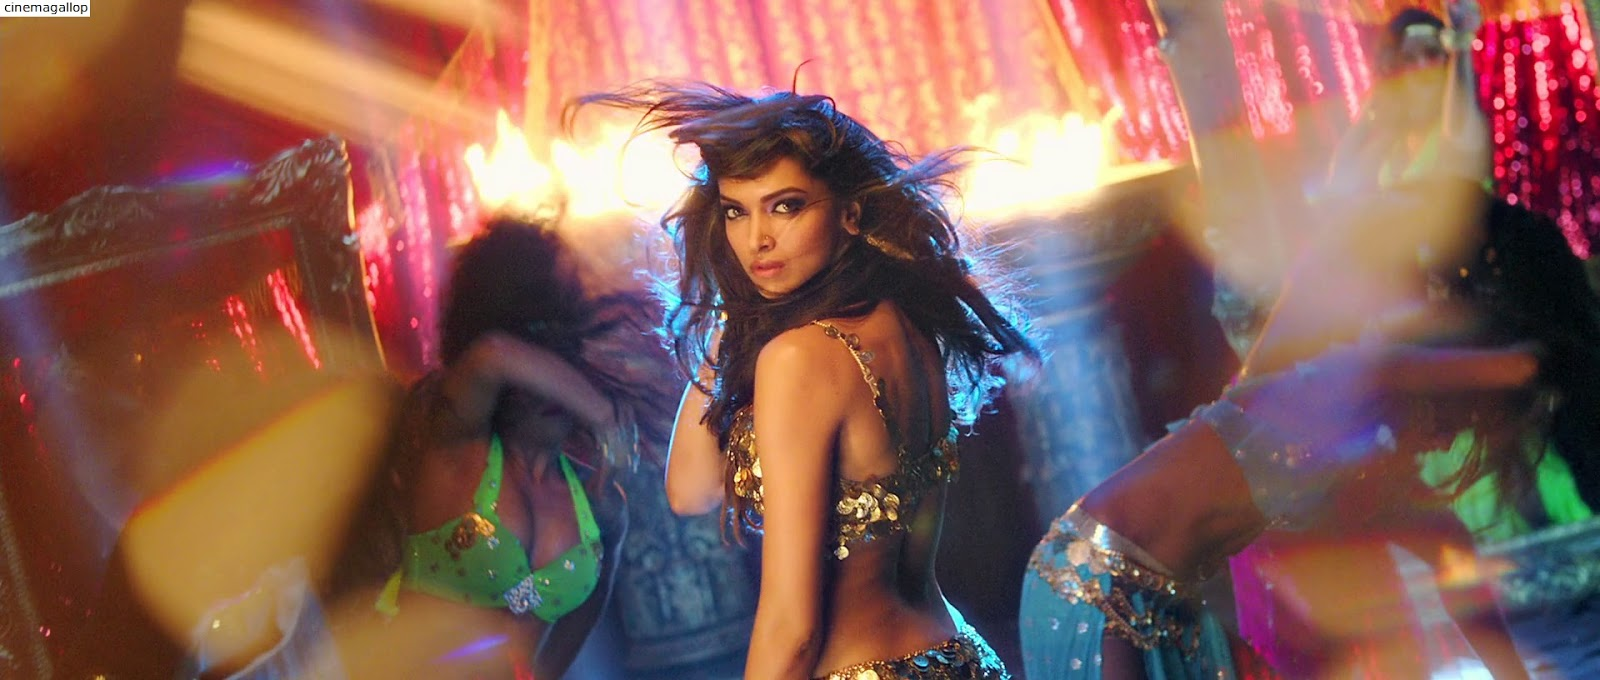 Deepika Padukone Hottest Dance moves-Sexy Screenshot from her